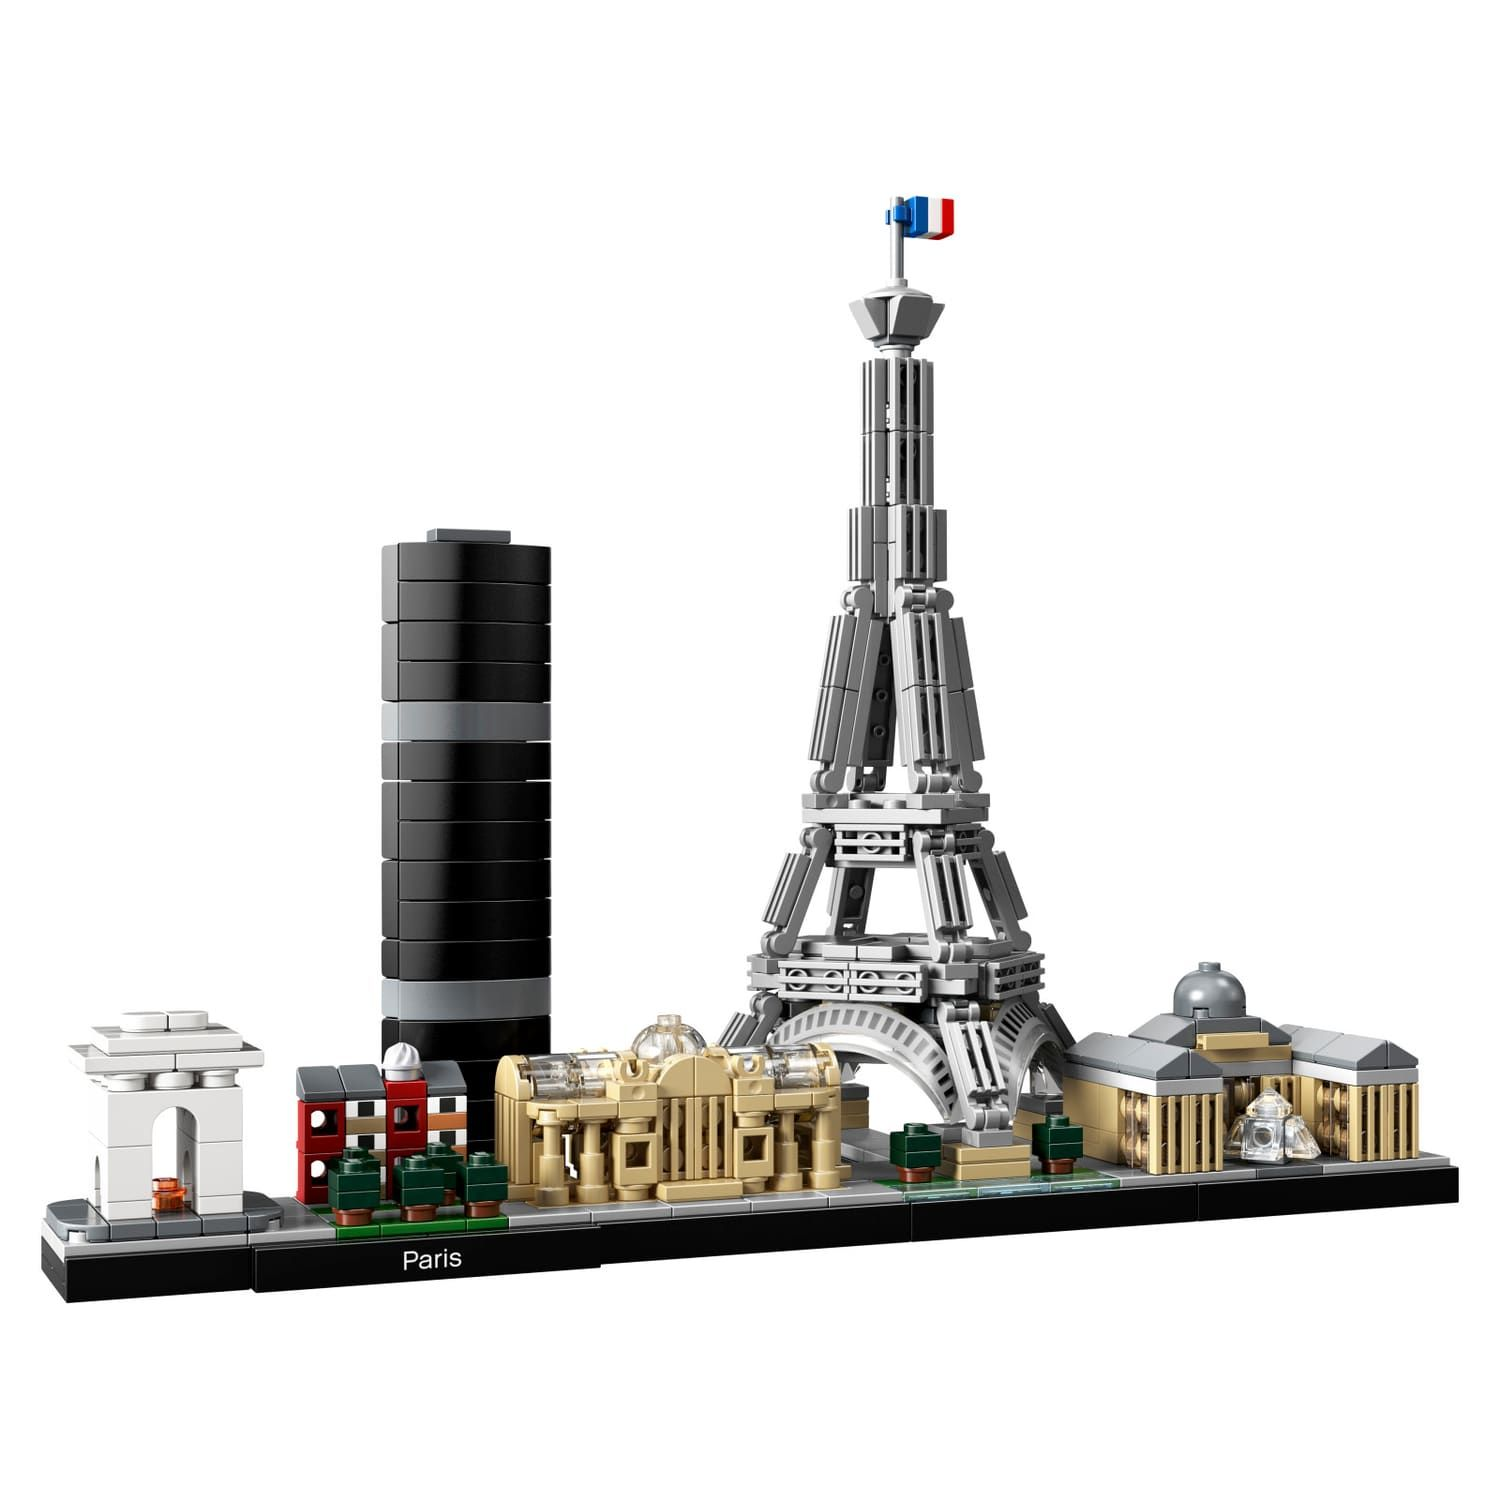 Las Vegas 21047 Architecture Buy Online At The Official Lego Shop Us Lego Architecture Las Vegas Architecture Lego Architecture Building